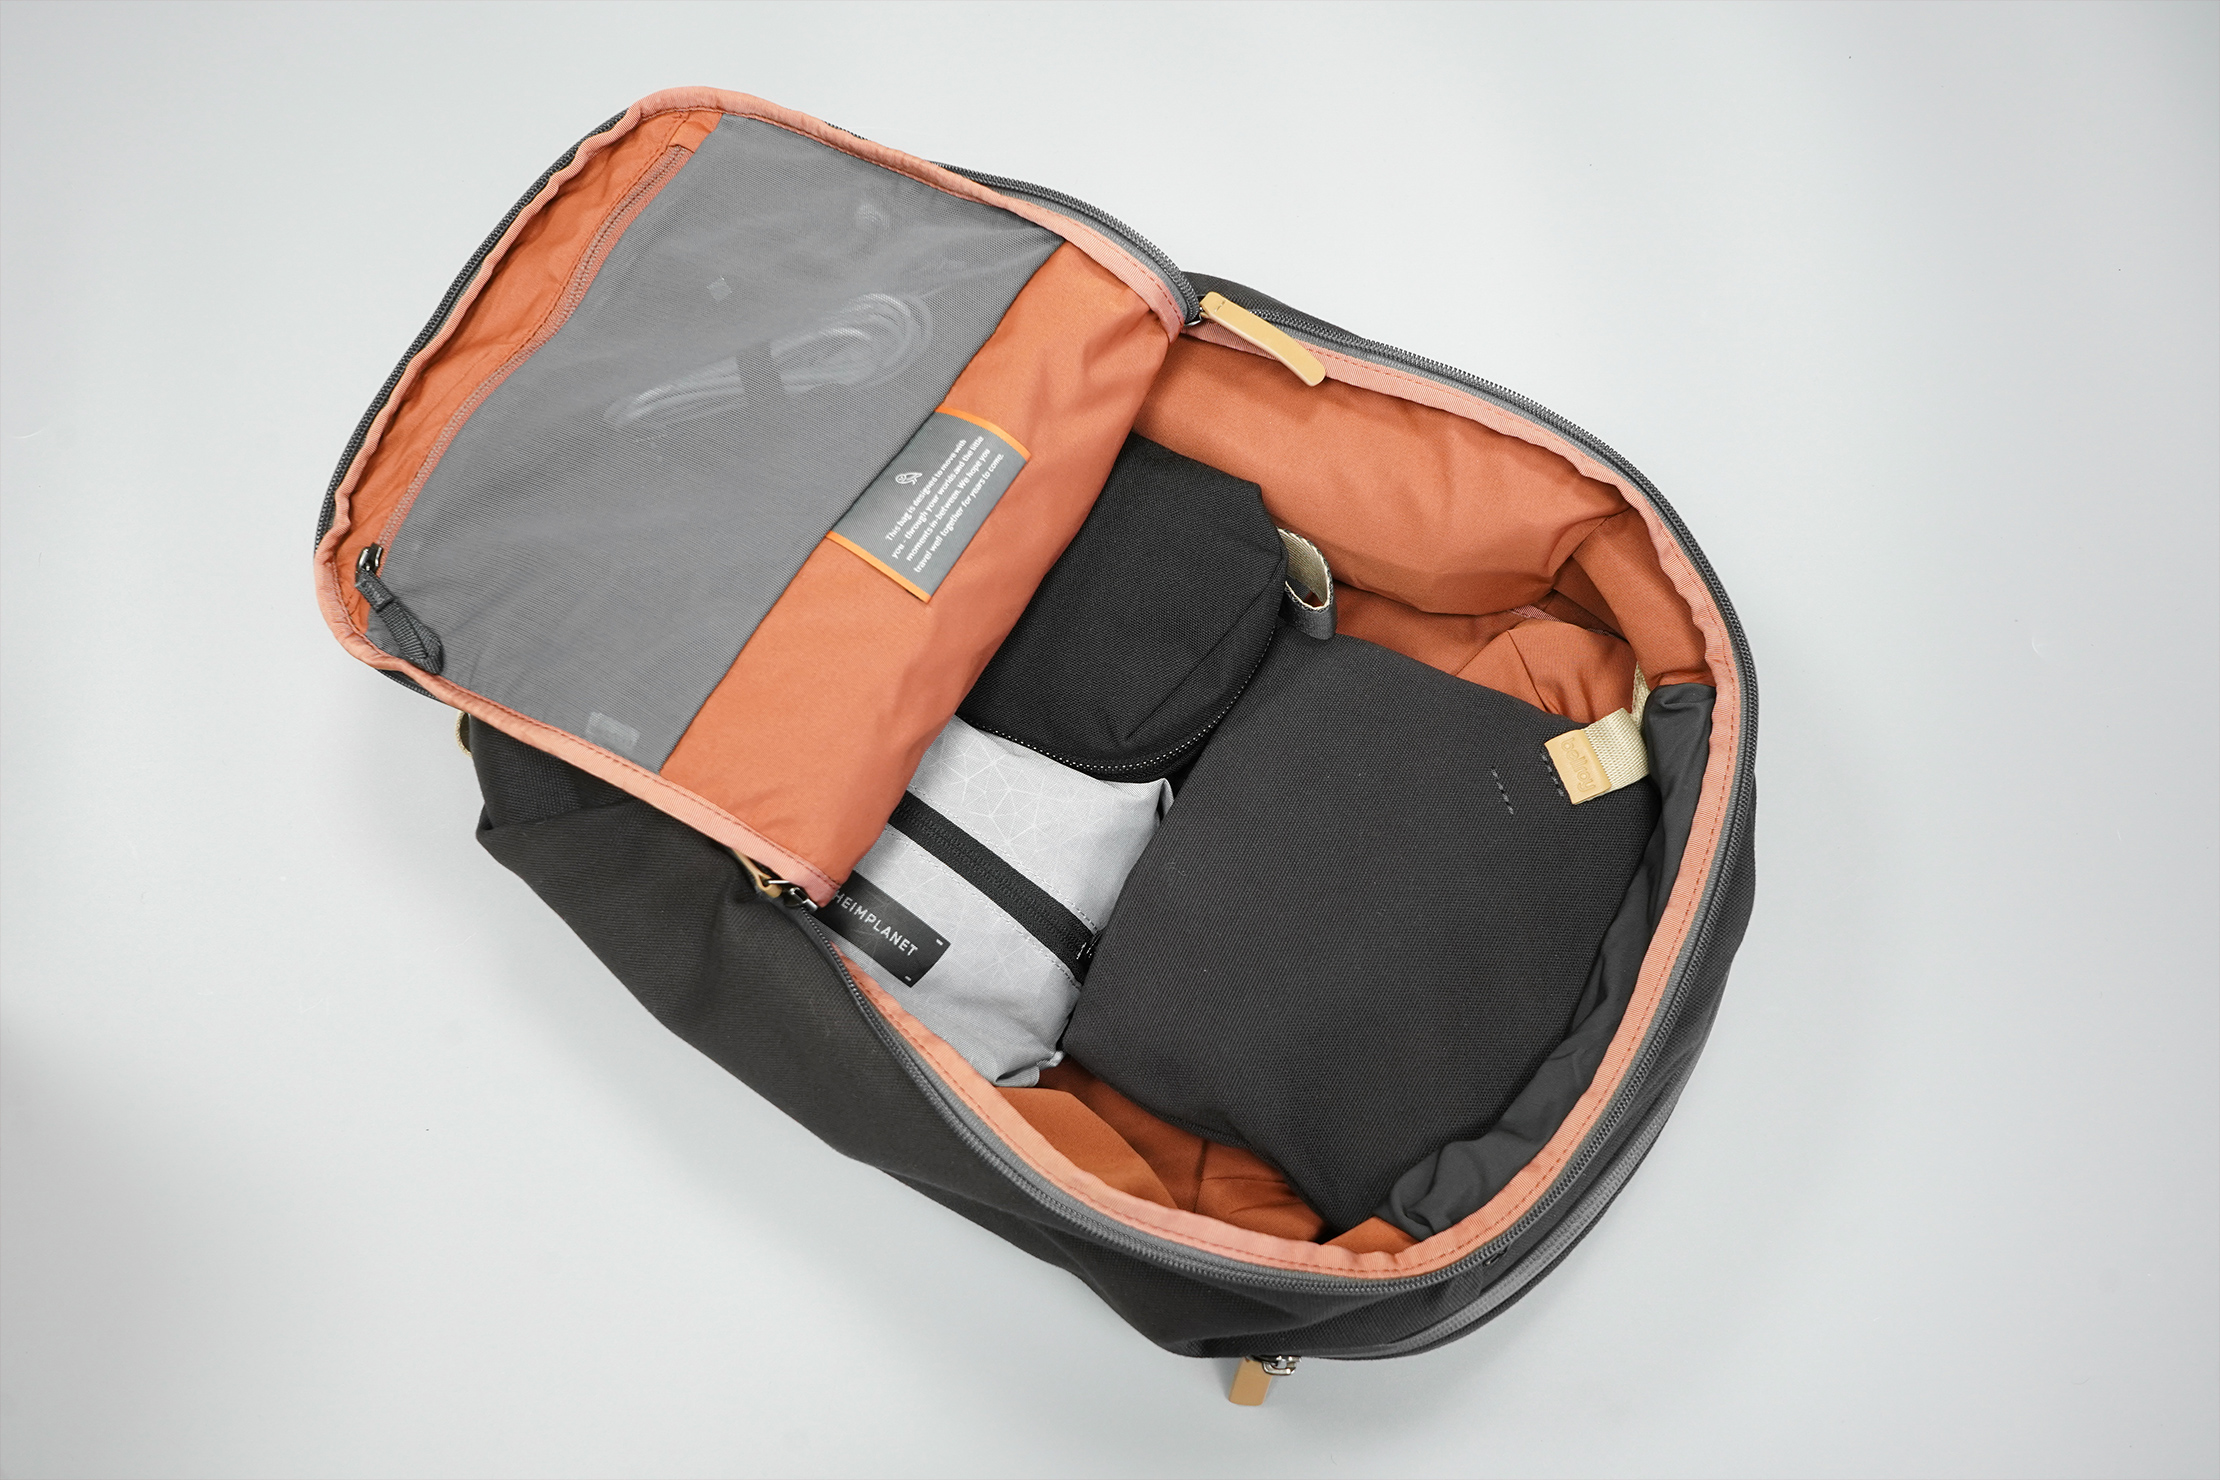 Bellroy Transit Workpack | A clamshell-style opening makes packing easier and visibility excellent